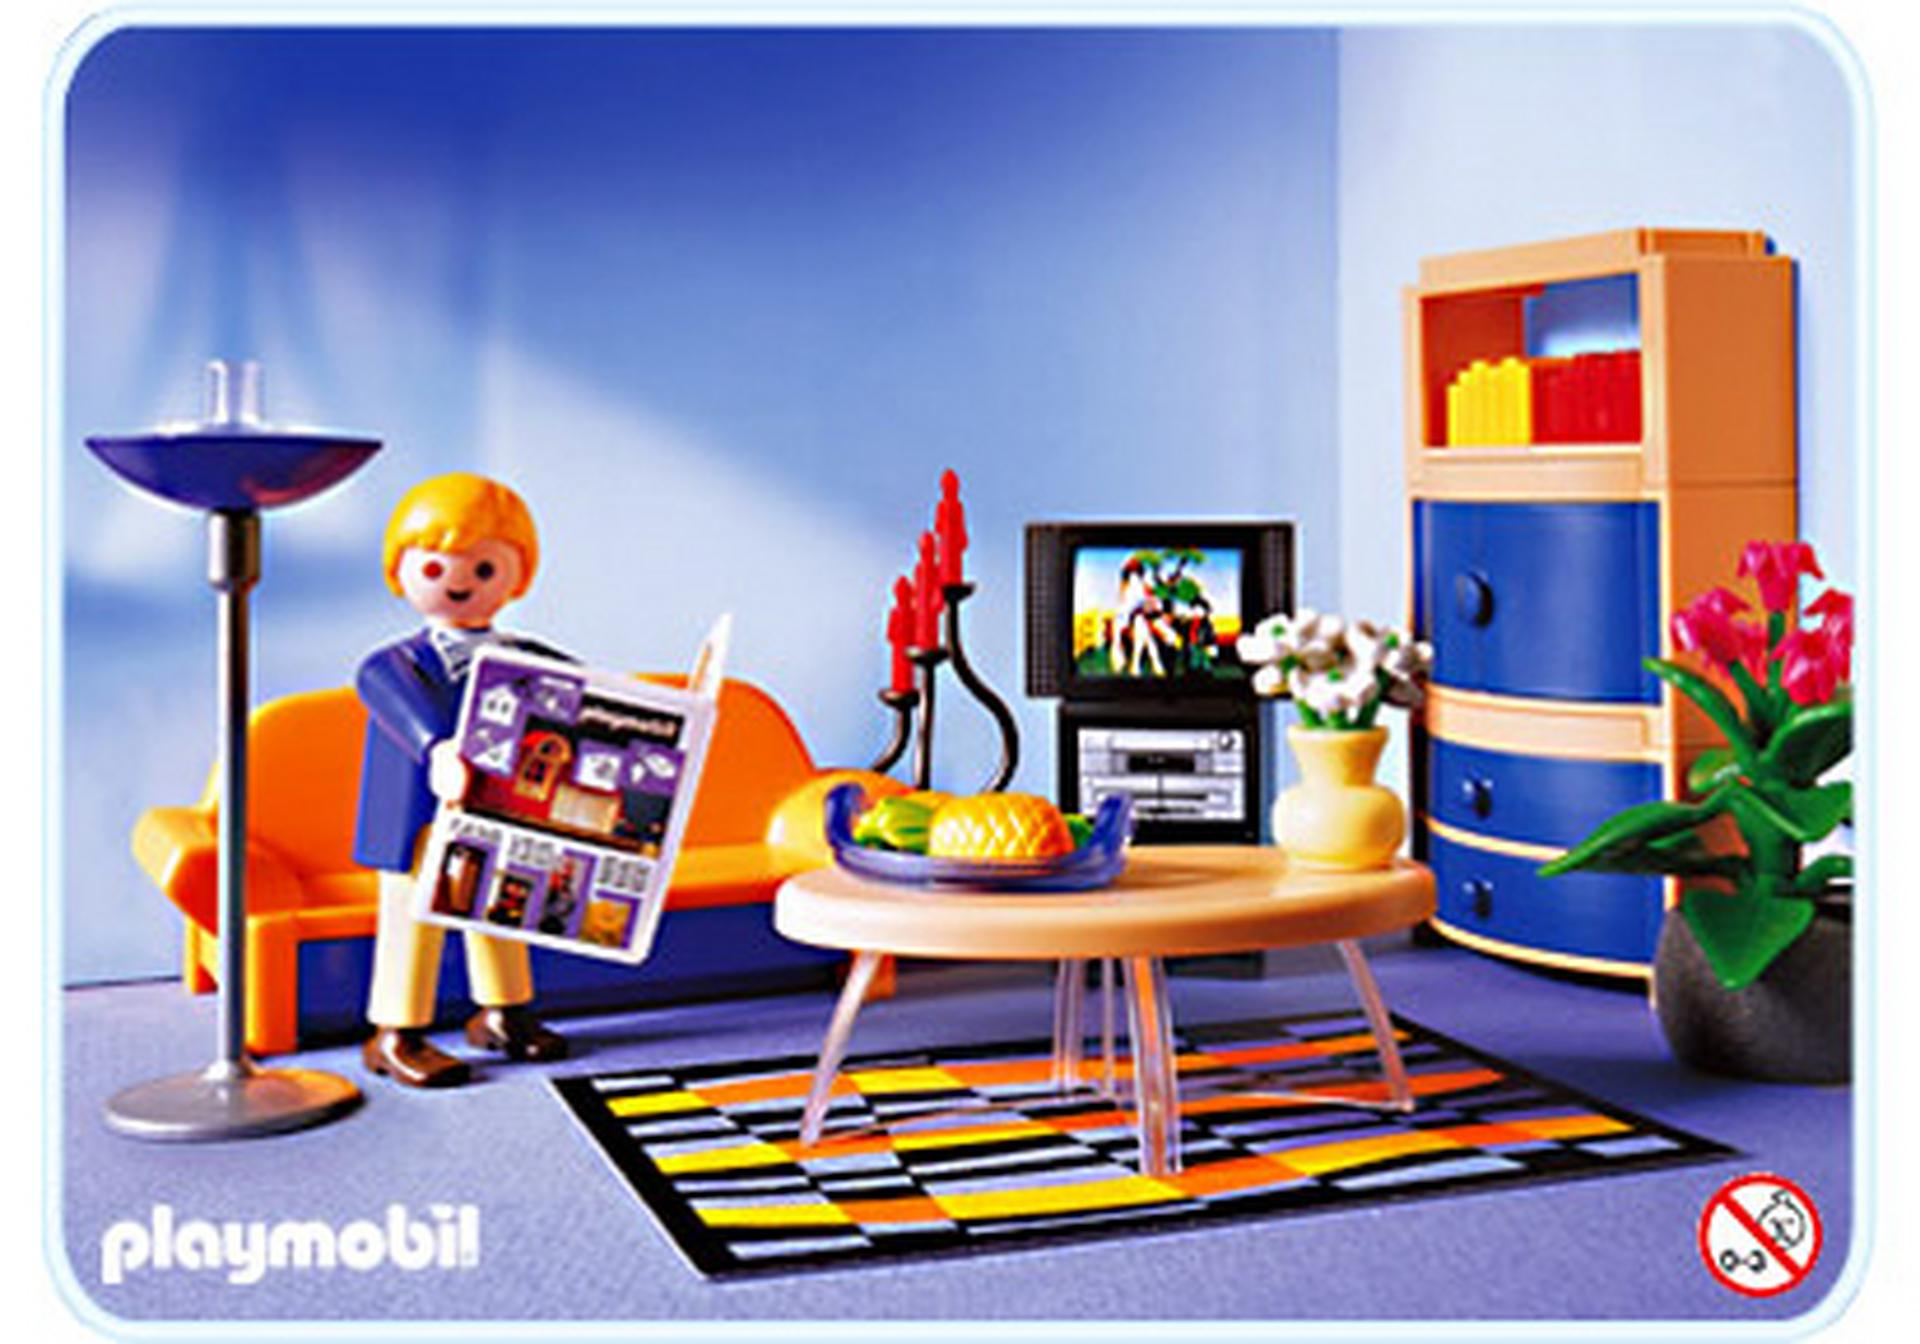 Salon contemporain 3966 a playmobil france for Jugendzimmer playmobil